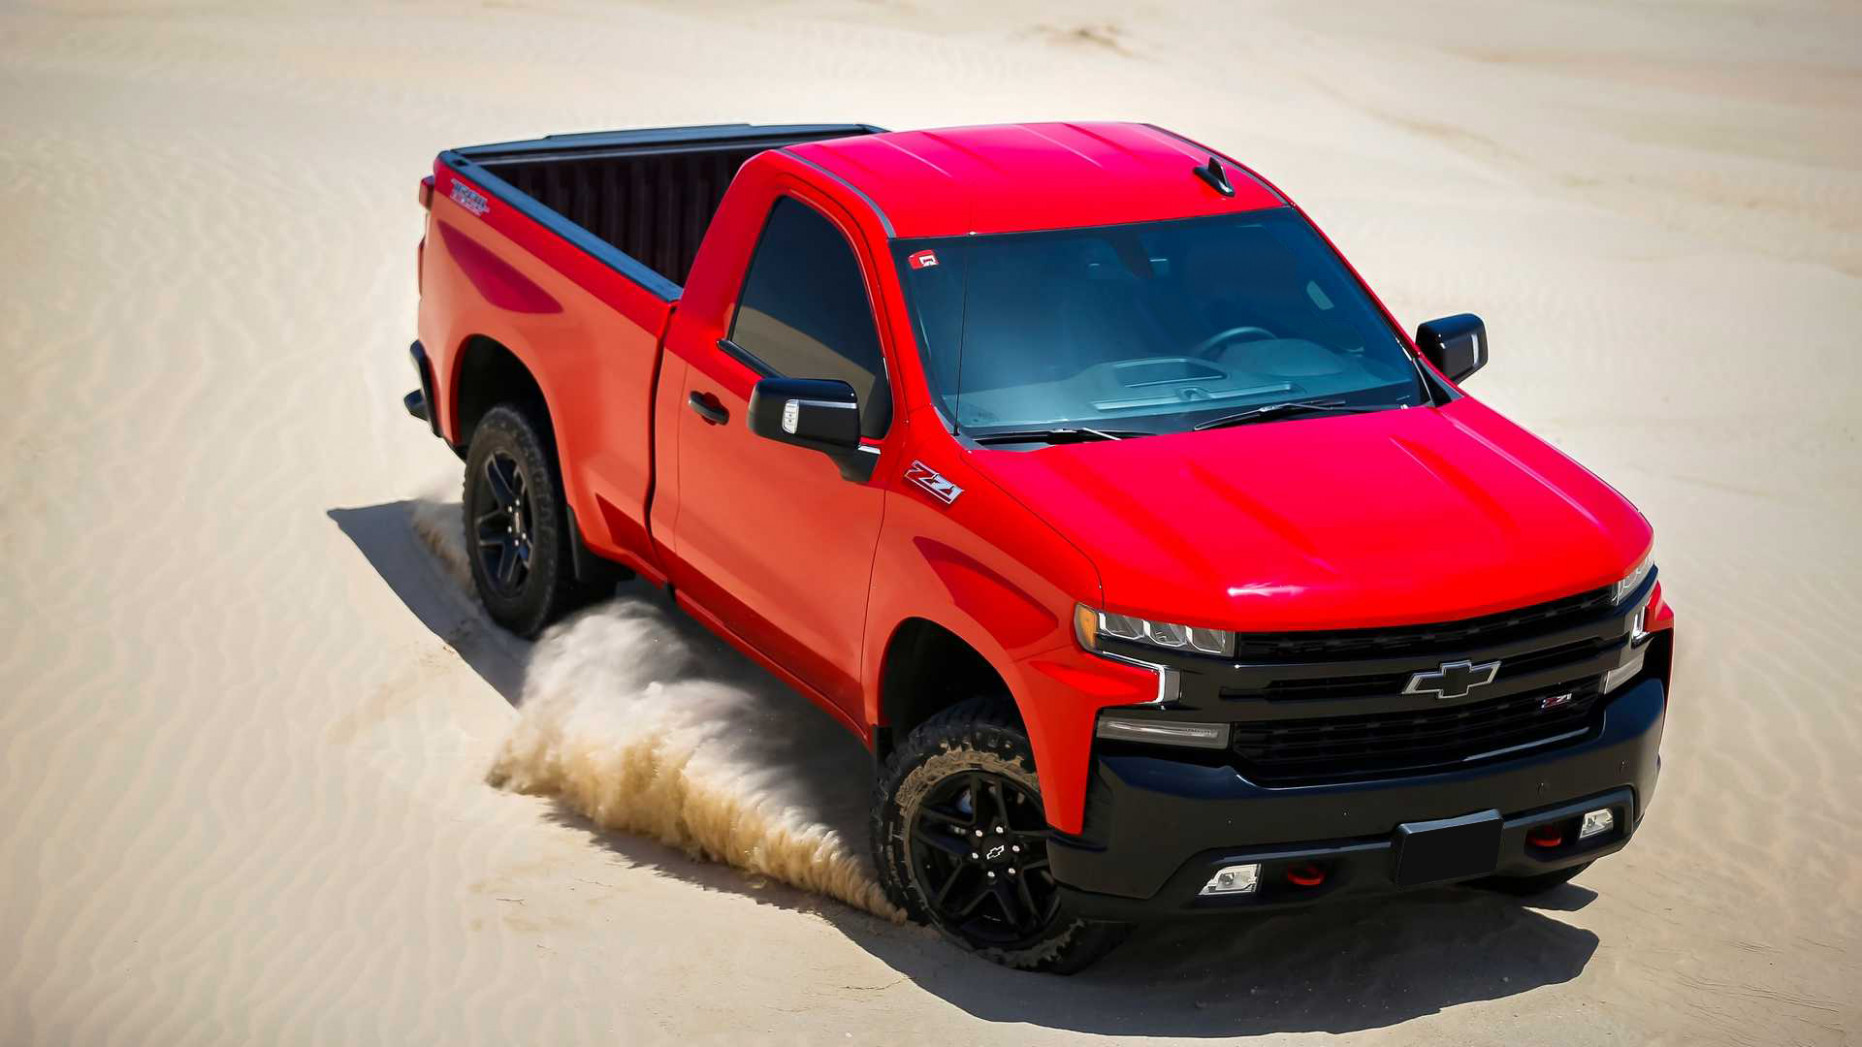 New Concept 2022 Chevy Reaper